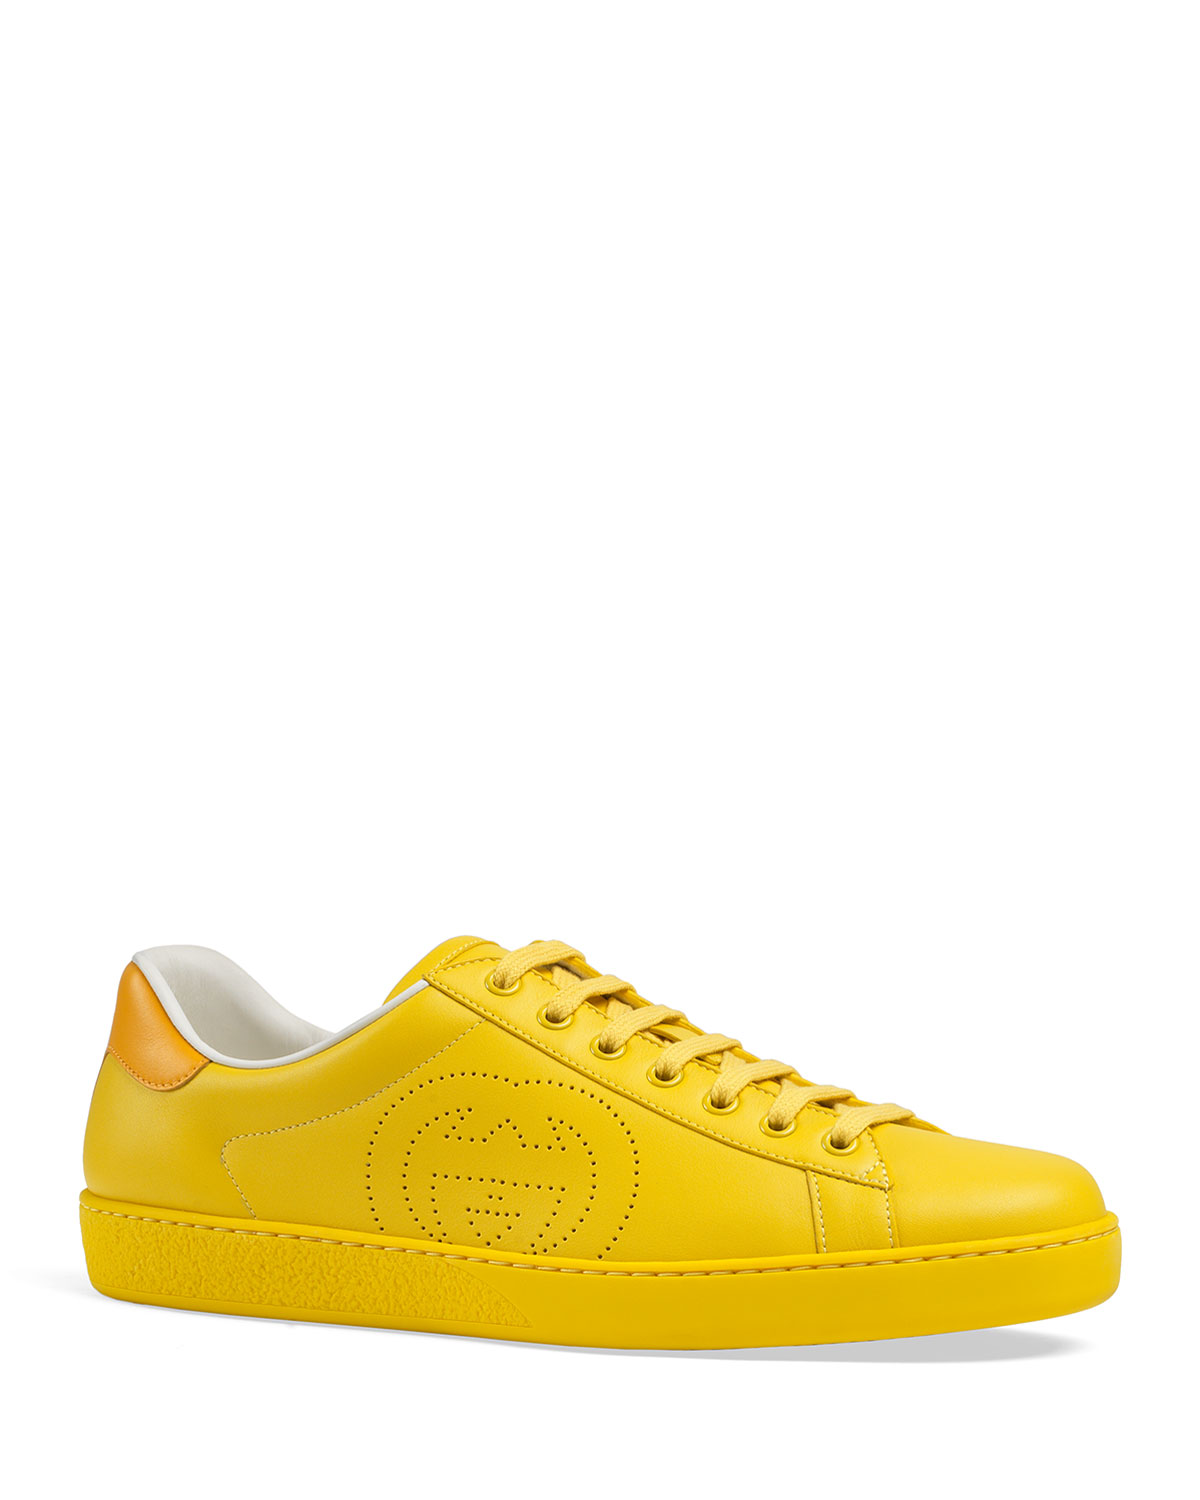 Gucci Sneakers MEN'S NEW ACE PERFORATED GG LEATHER SNEAKERS